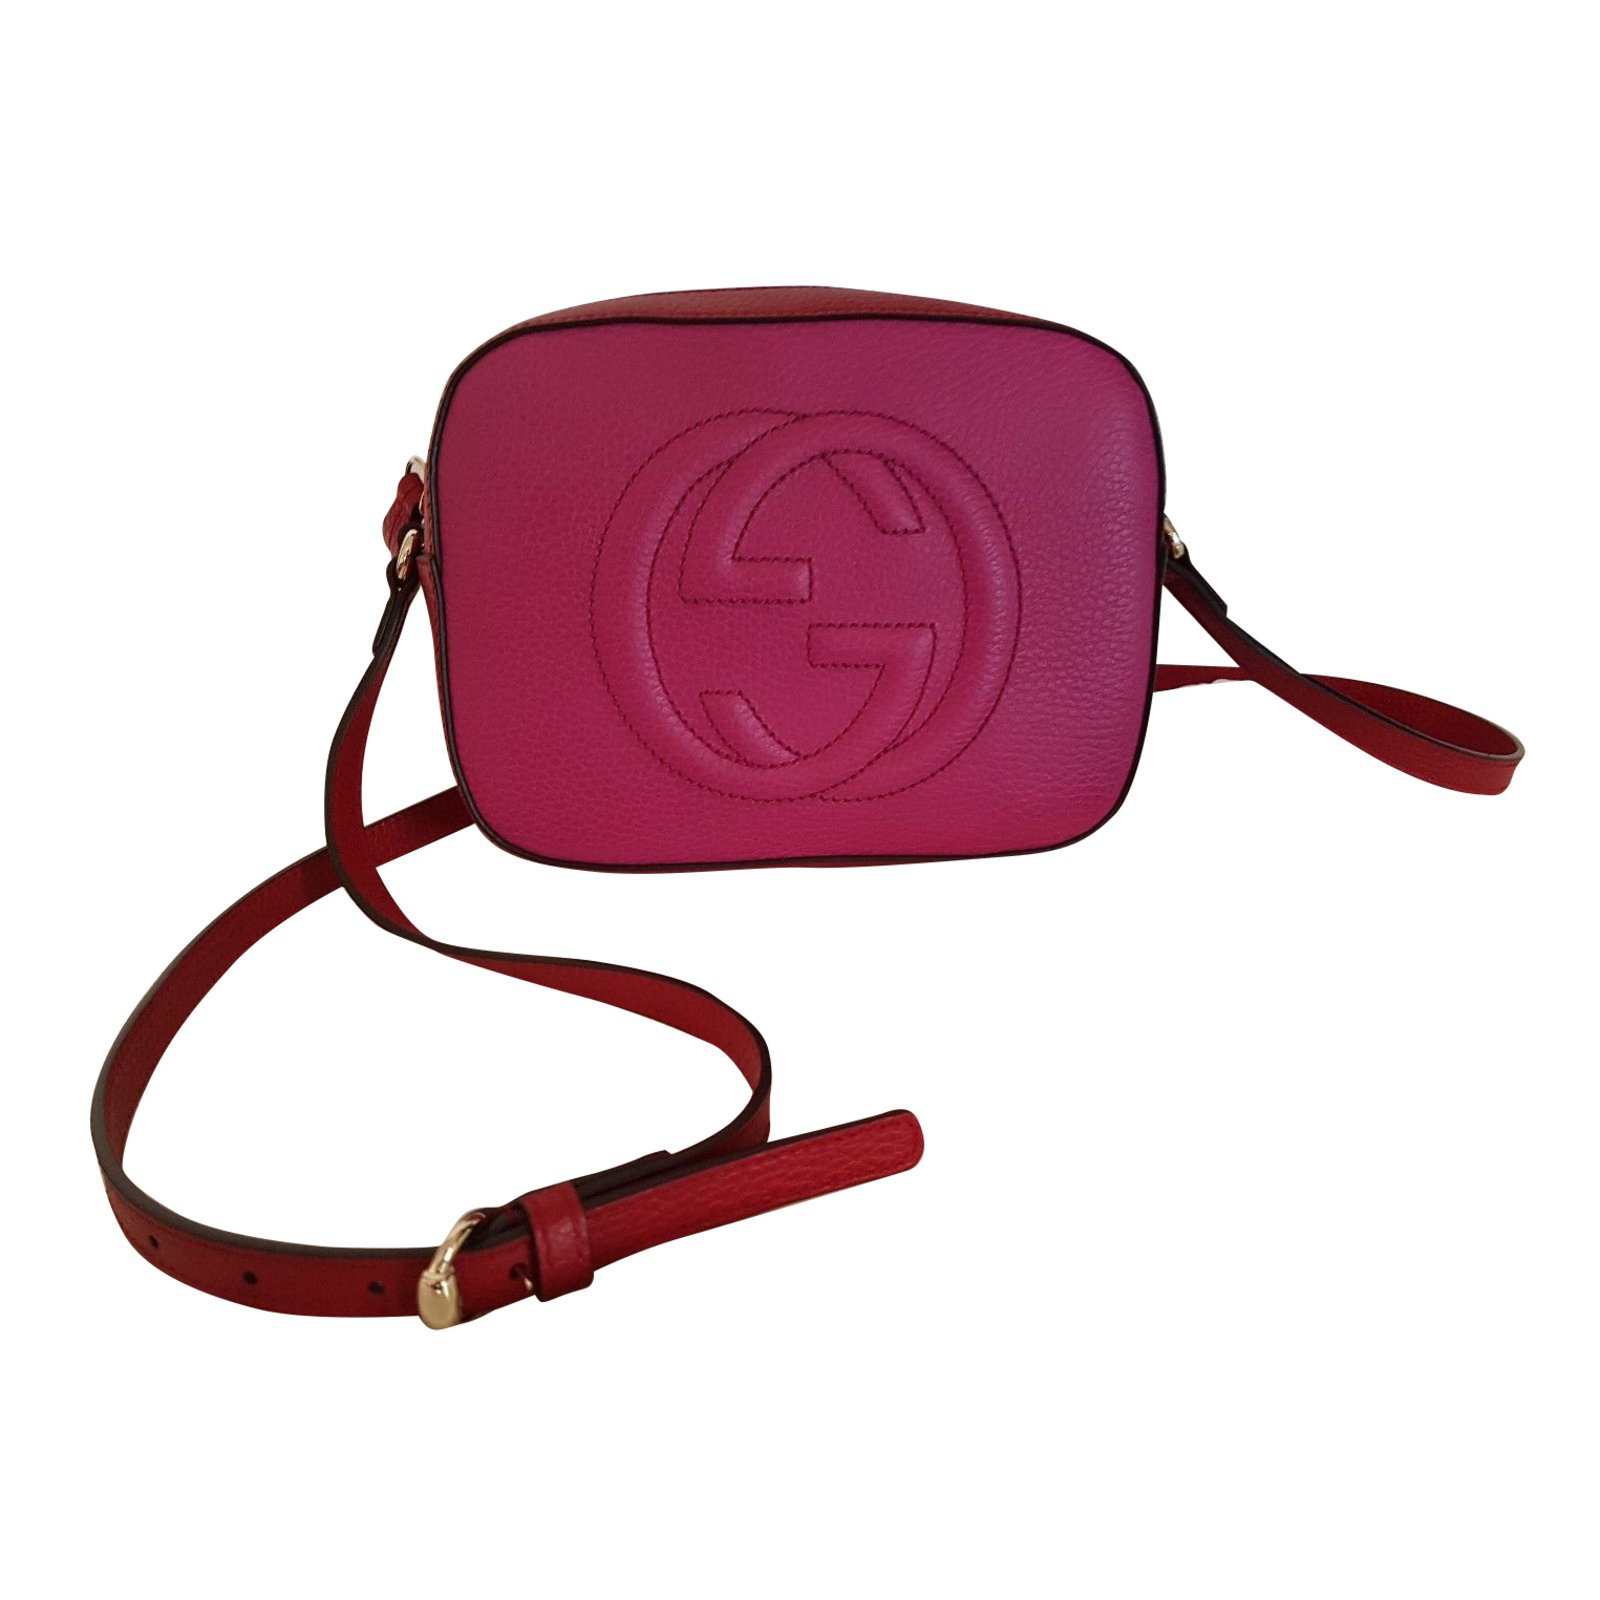 gucci used. Gucci Disco Bag Soho Double Color Red /fucsia New No Used With Receipt Handbags